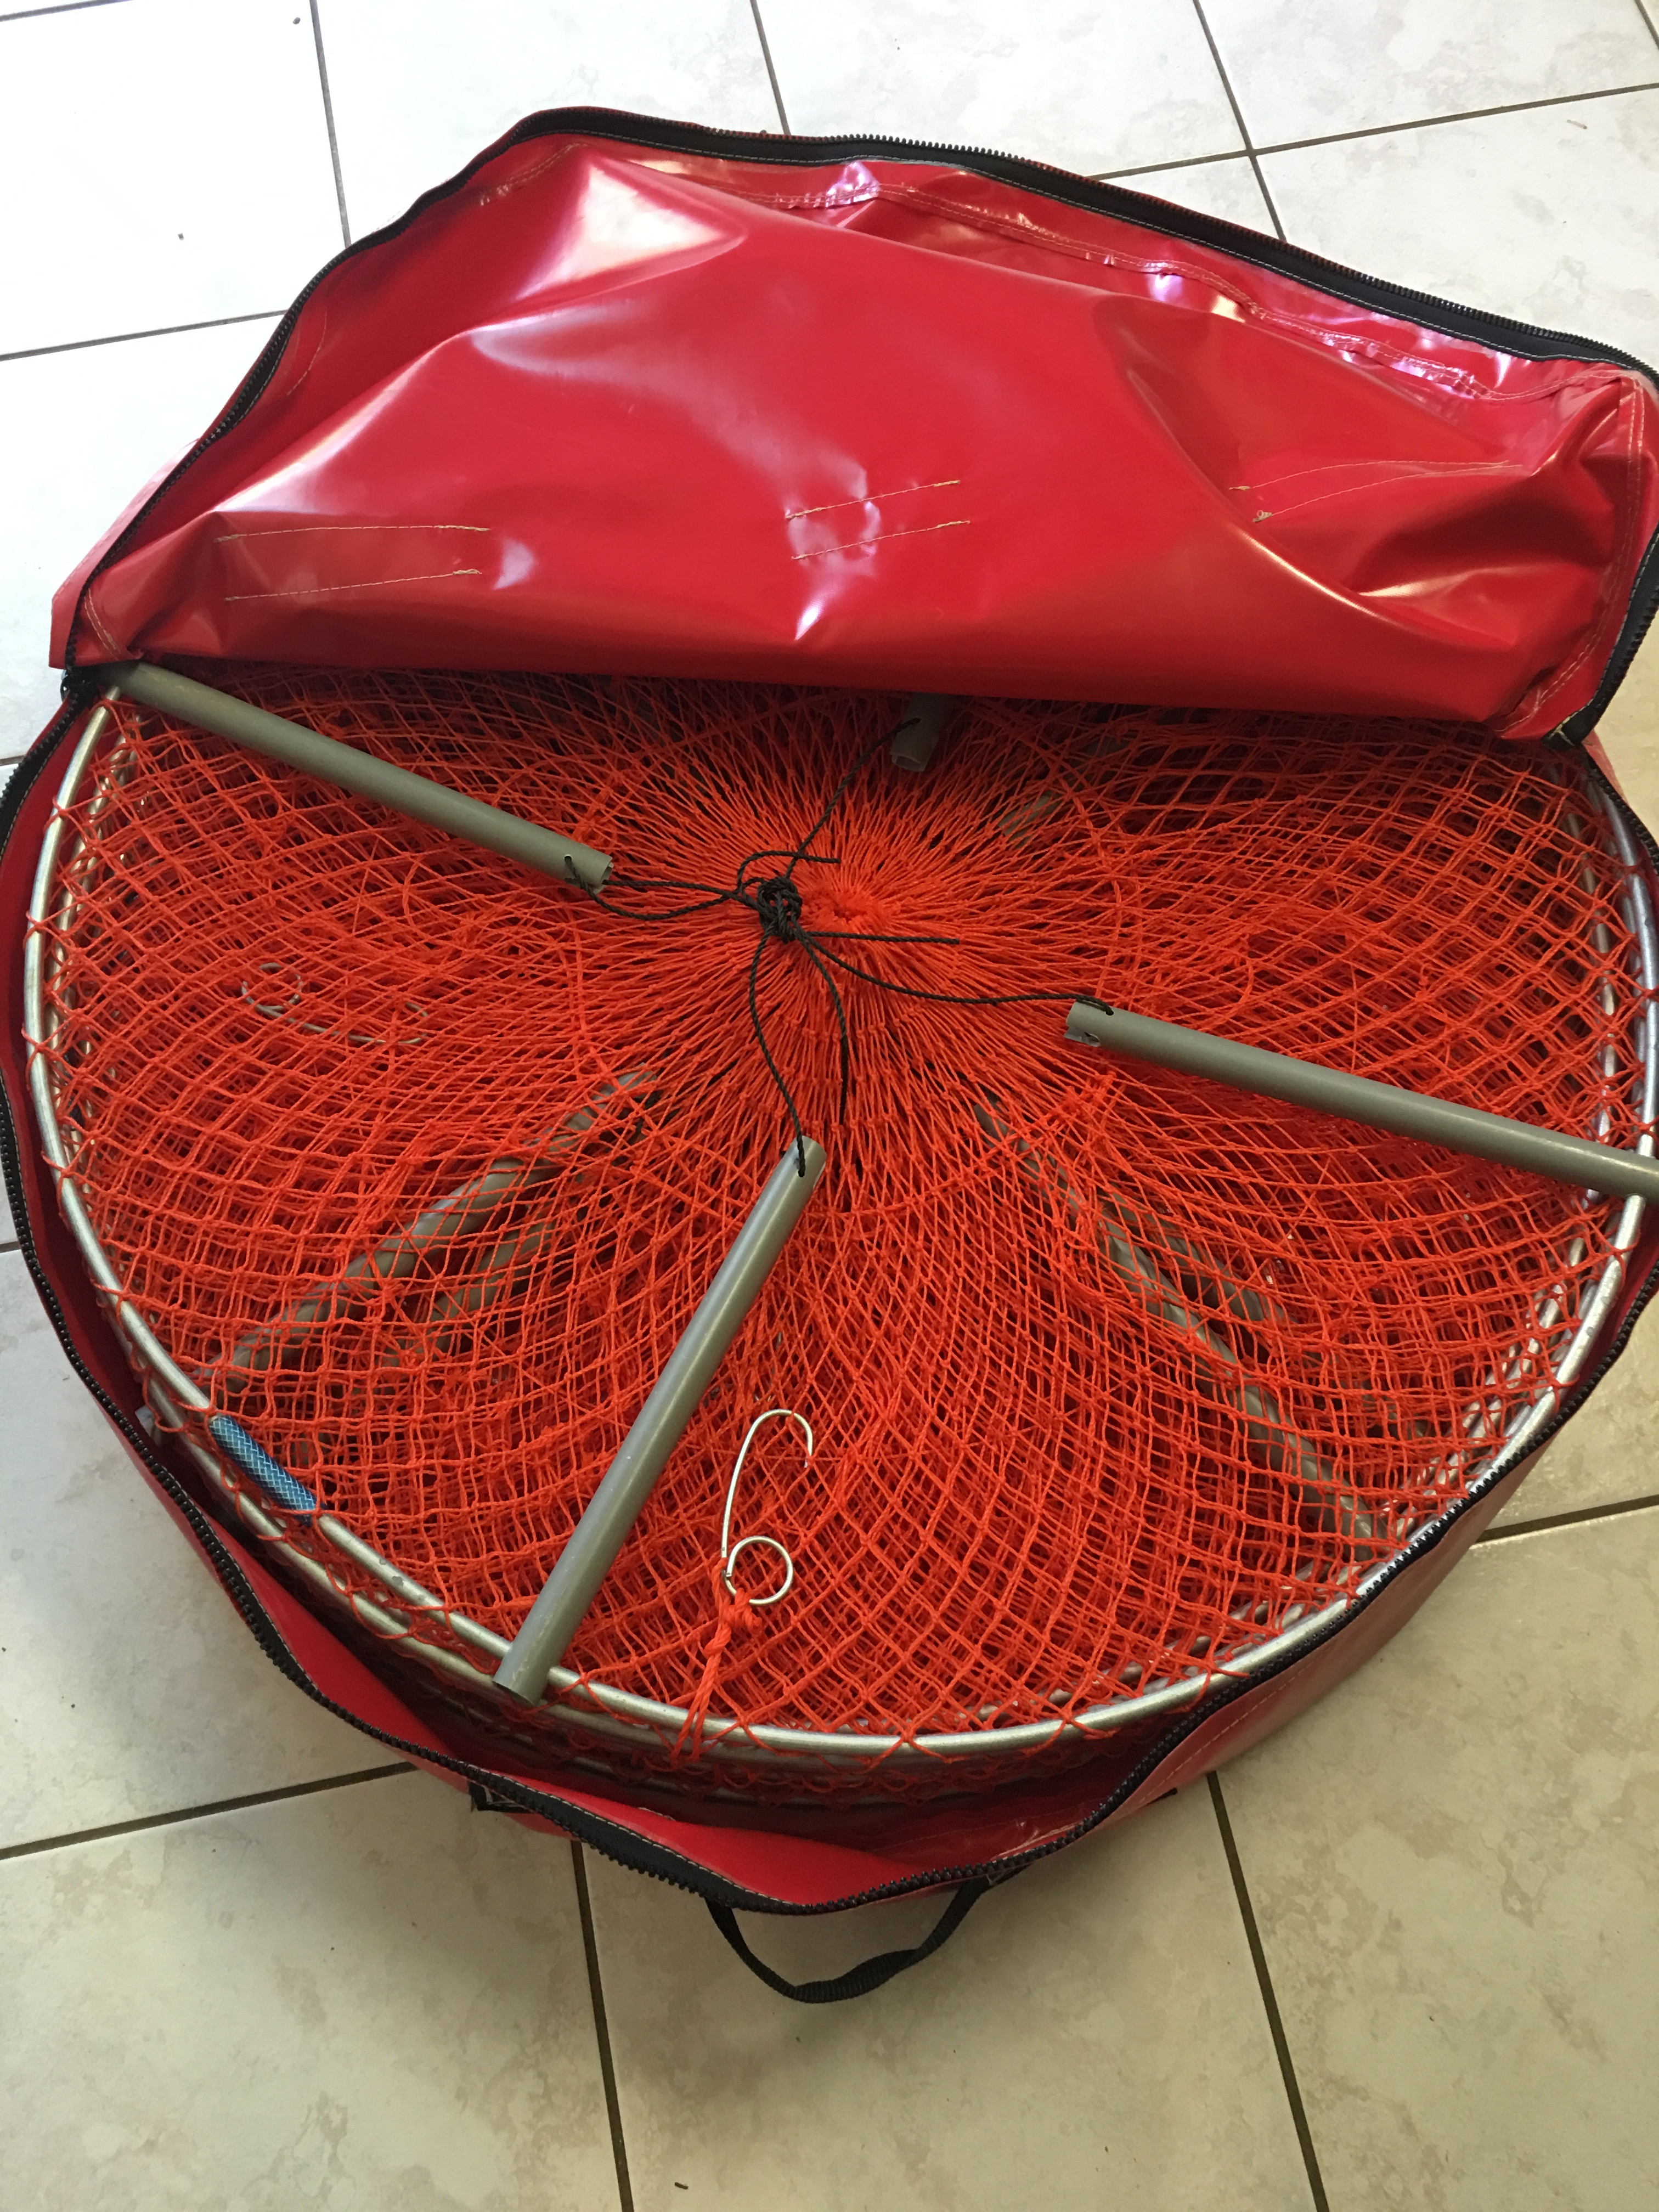 Crab Pot Bag Red Top Open with Pots